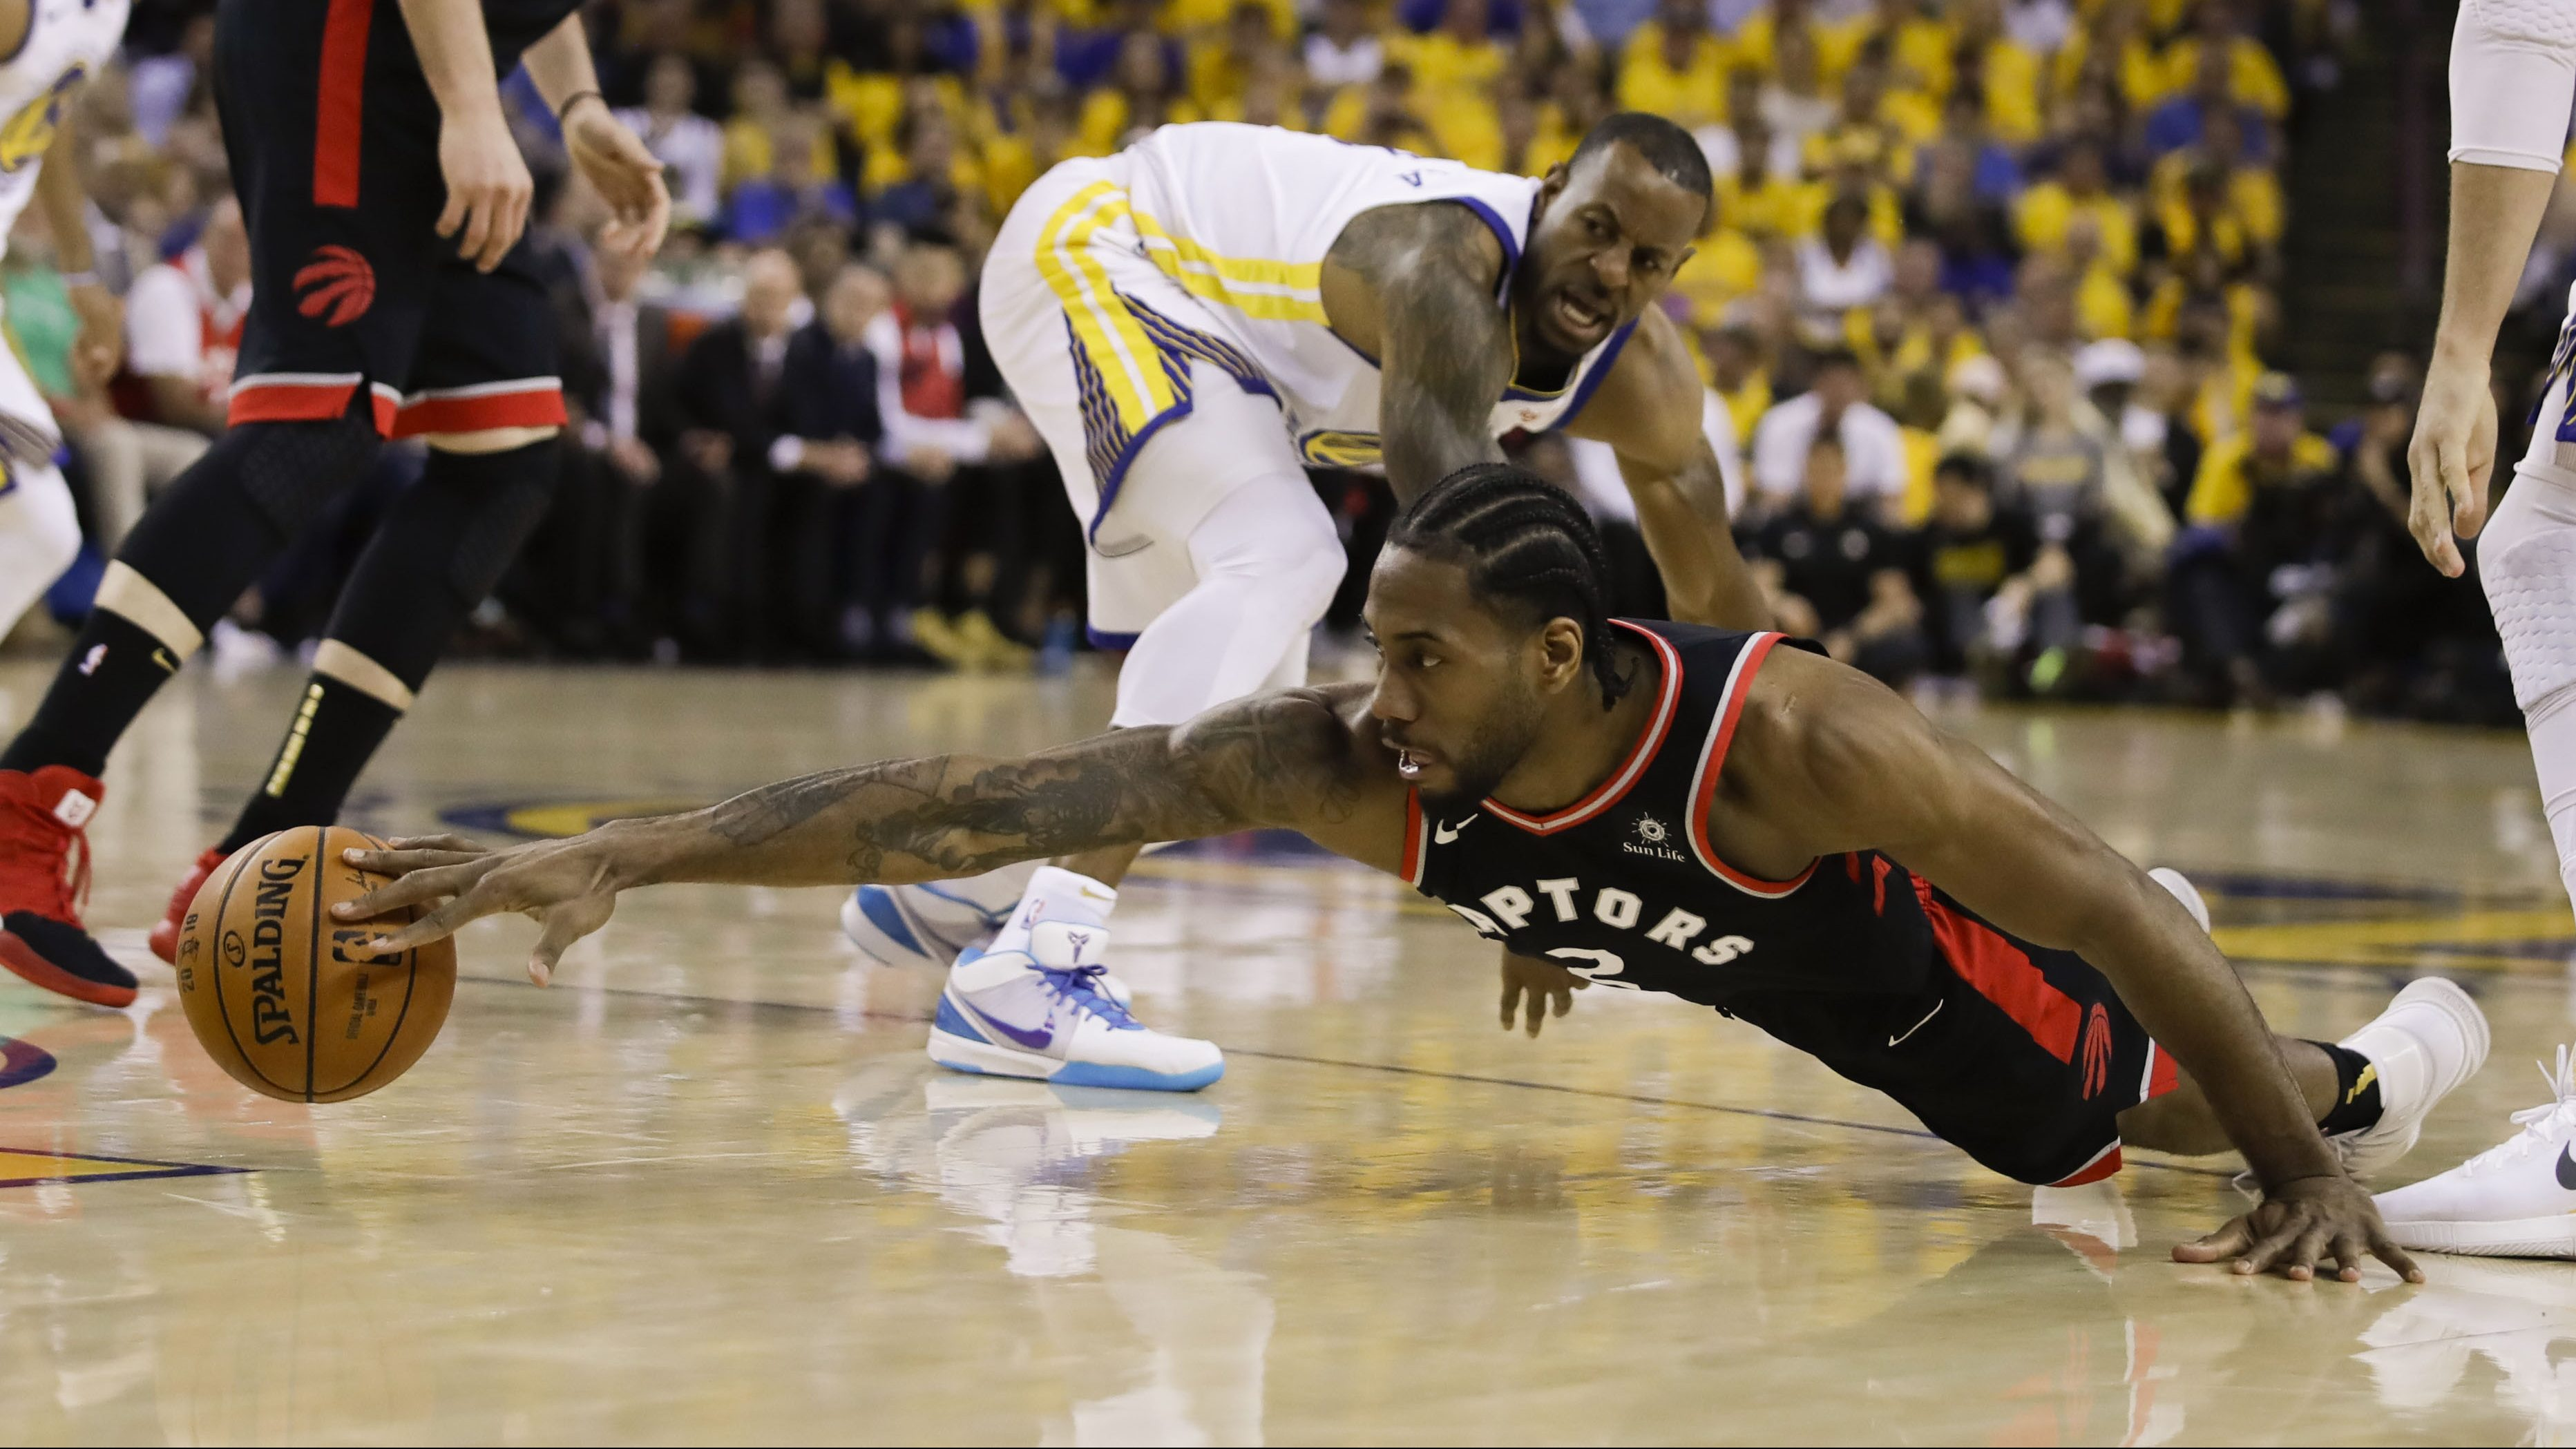 Nba Finals Game 3 Ratings Crash From 2018 As Raptors Win Again Deadline